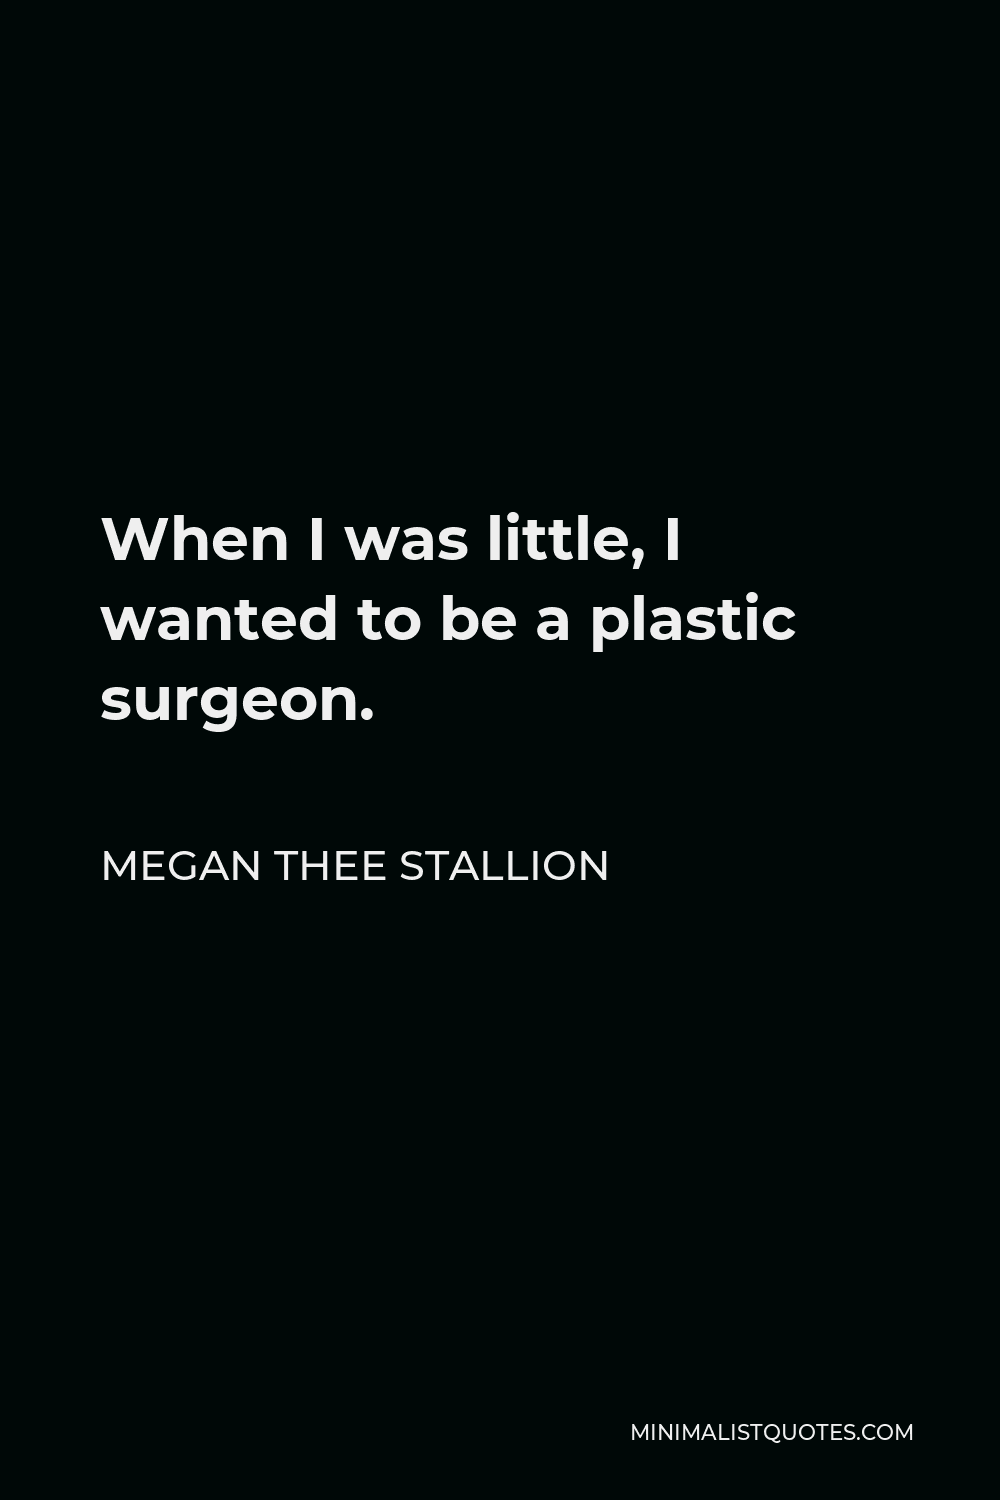 Megan Thee Stallion Quote - When I was little, I wanted to be a plastic surgeon.